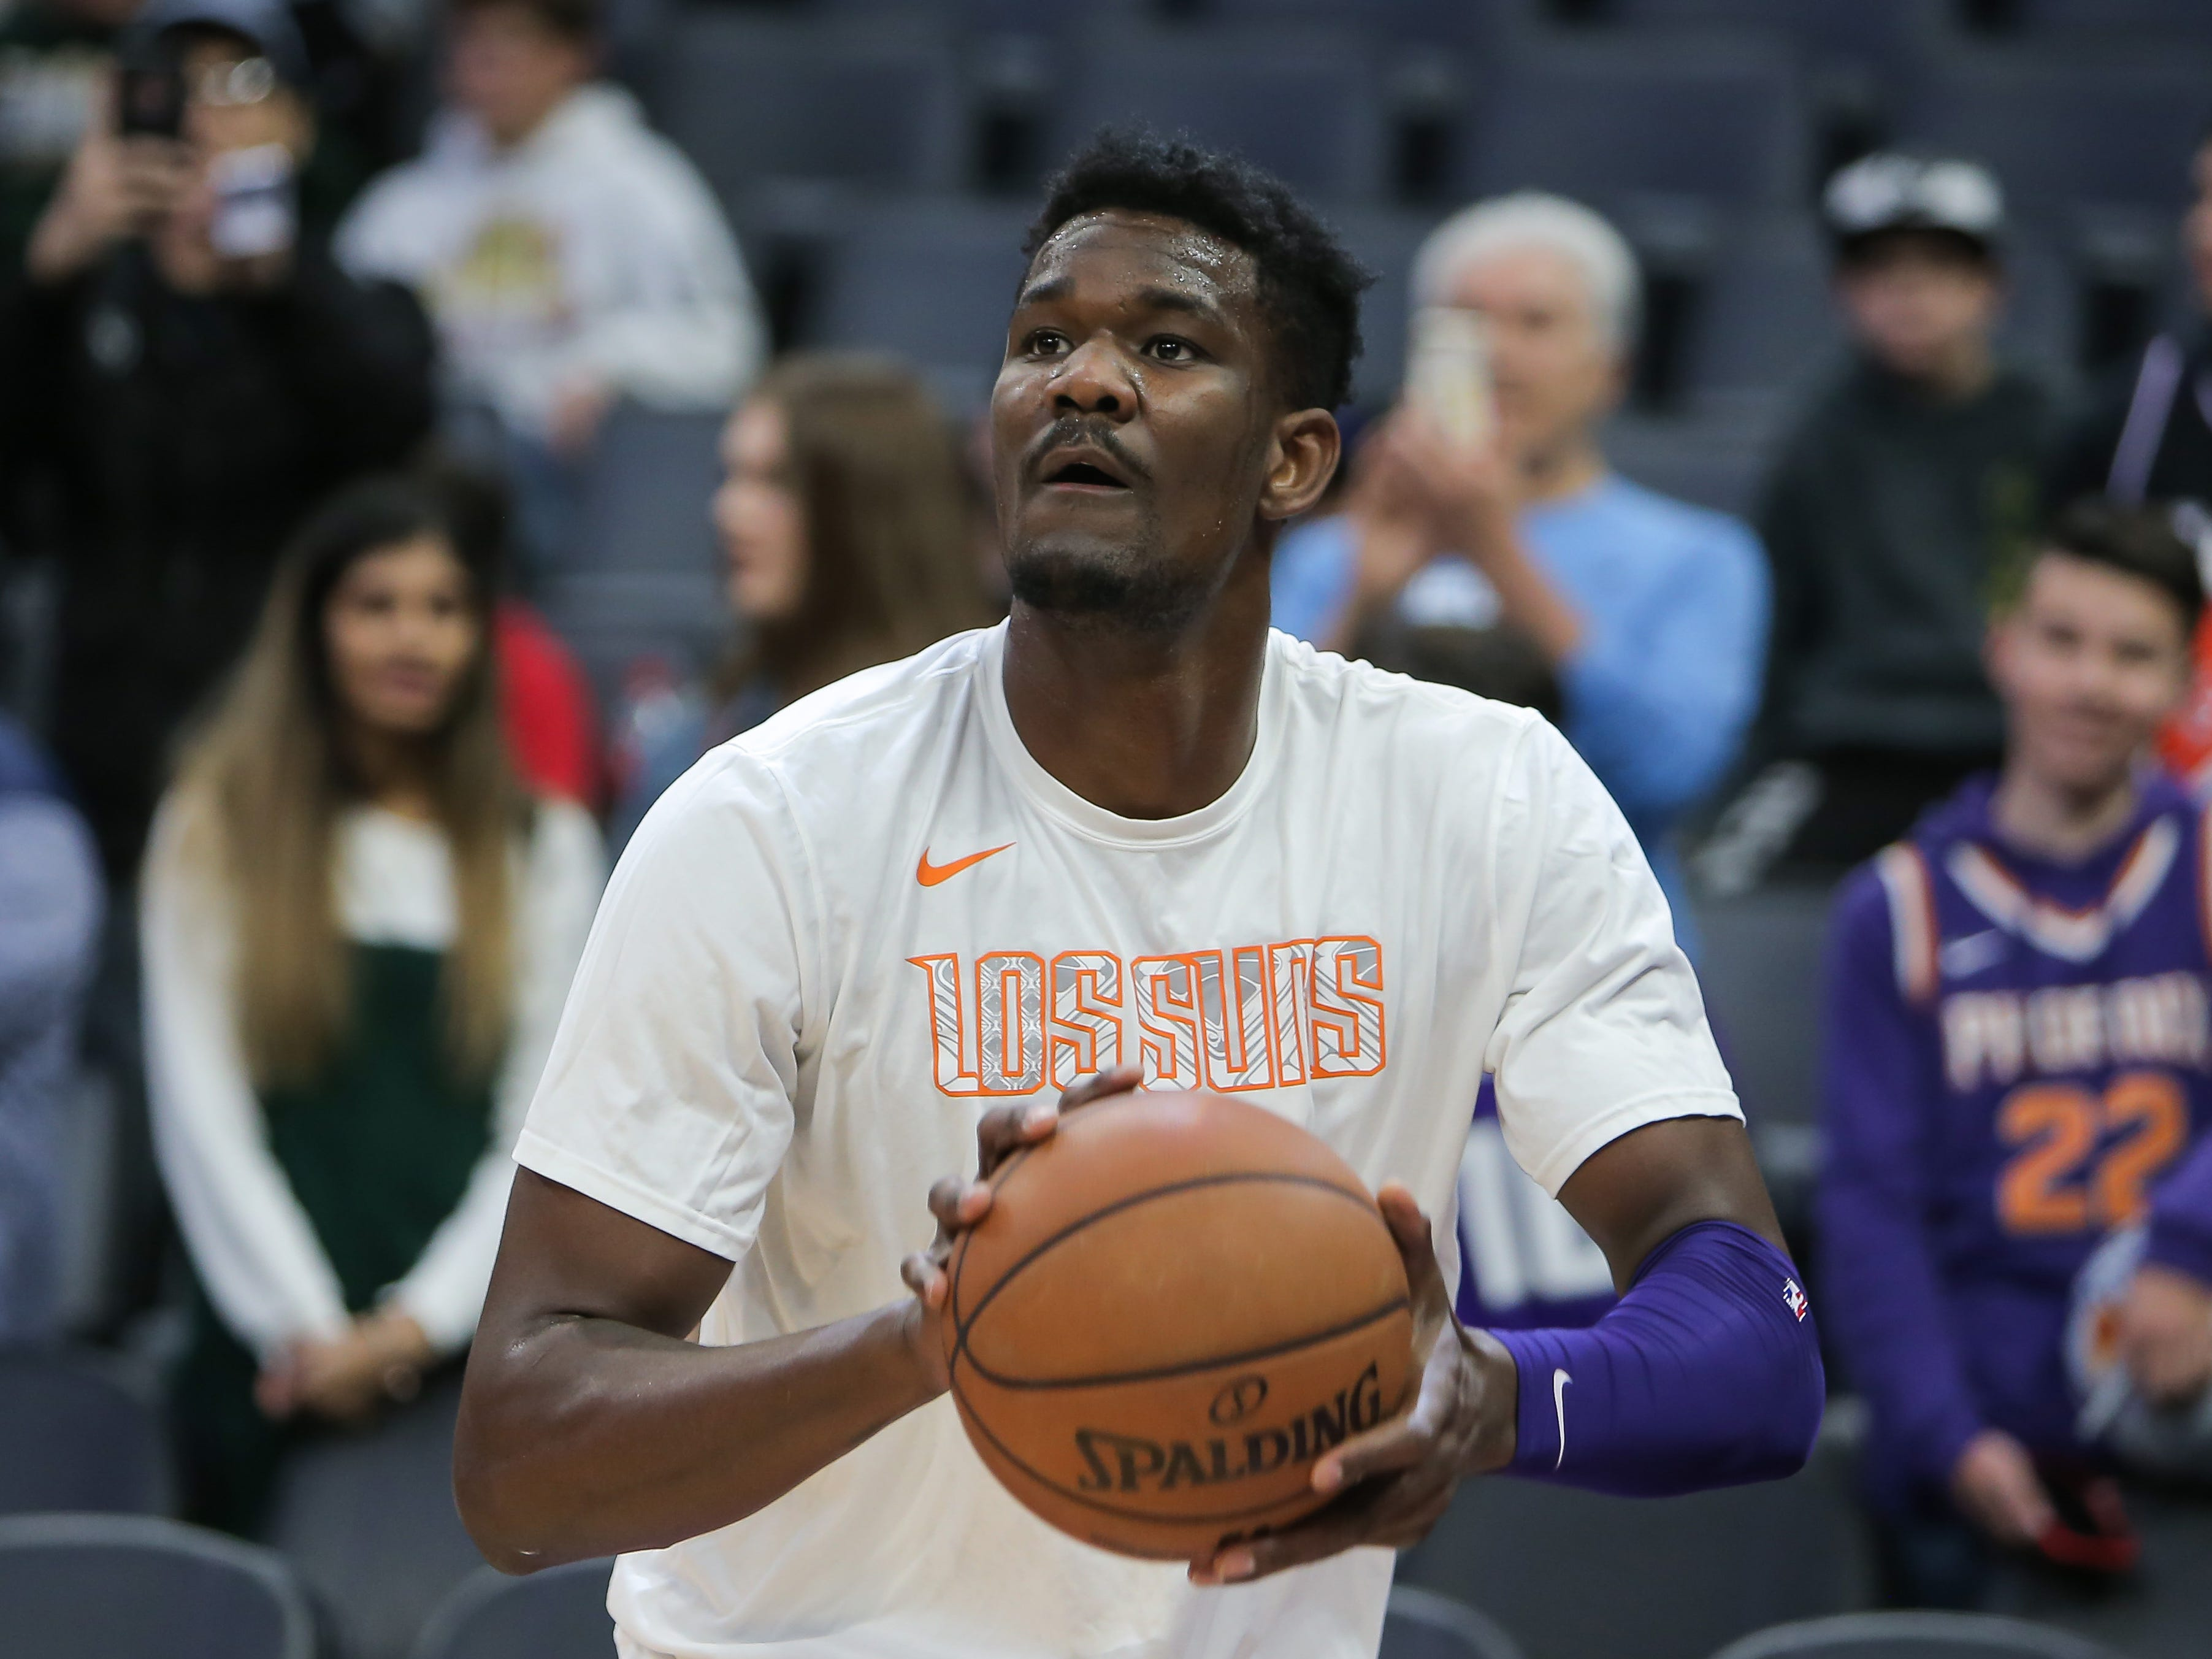 Mar 23, 2019; Sacramento, CA, USA; Phoenix Suns center Deandre Ayton (22) warms up before the game against the Sacramento Kings at Golden 1 Center.